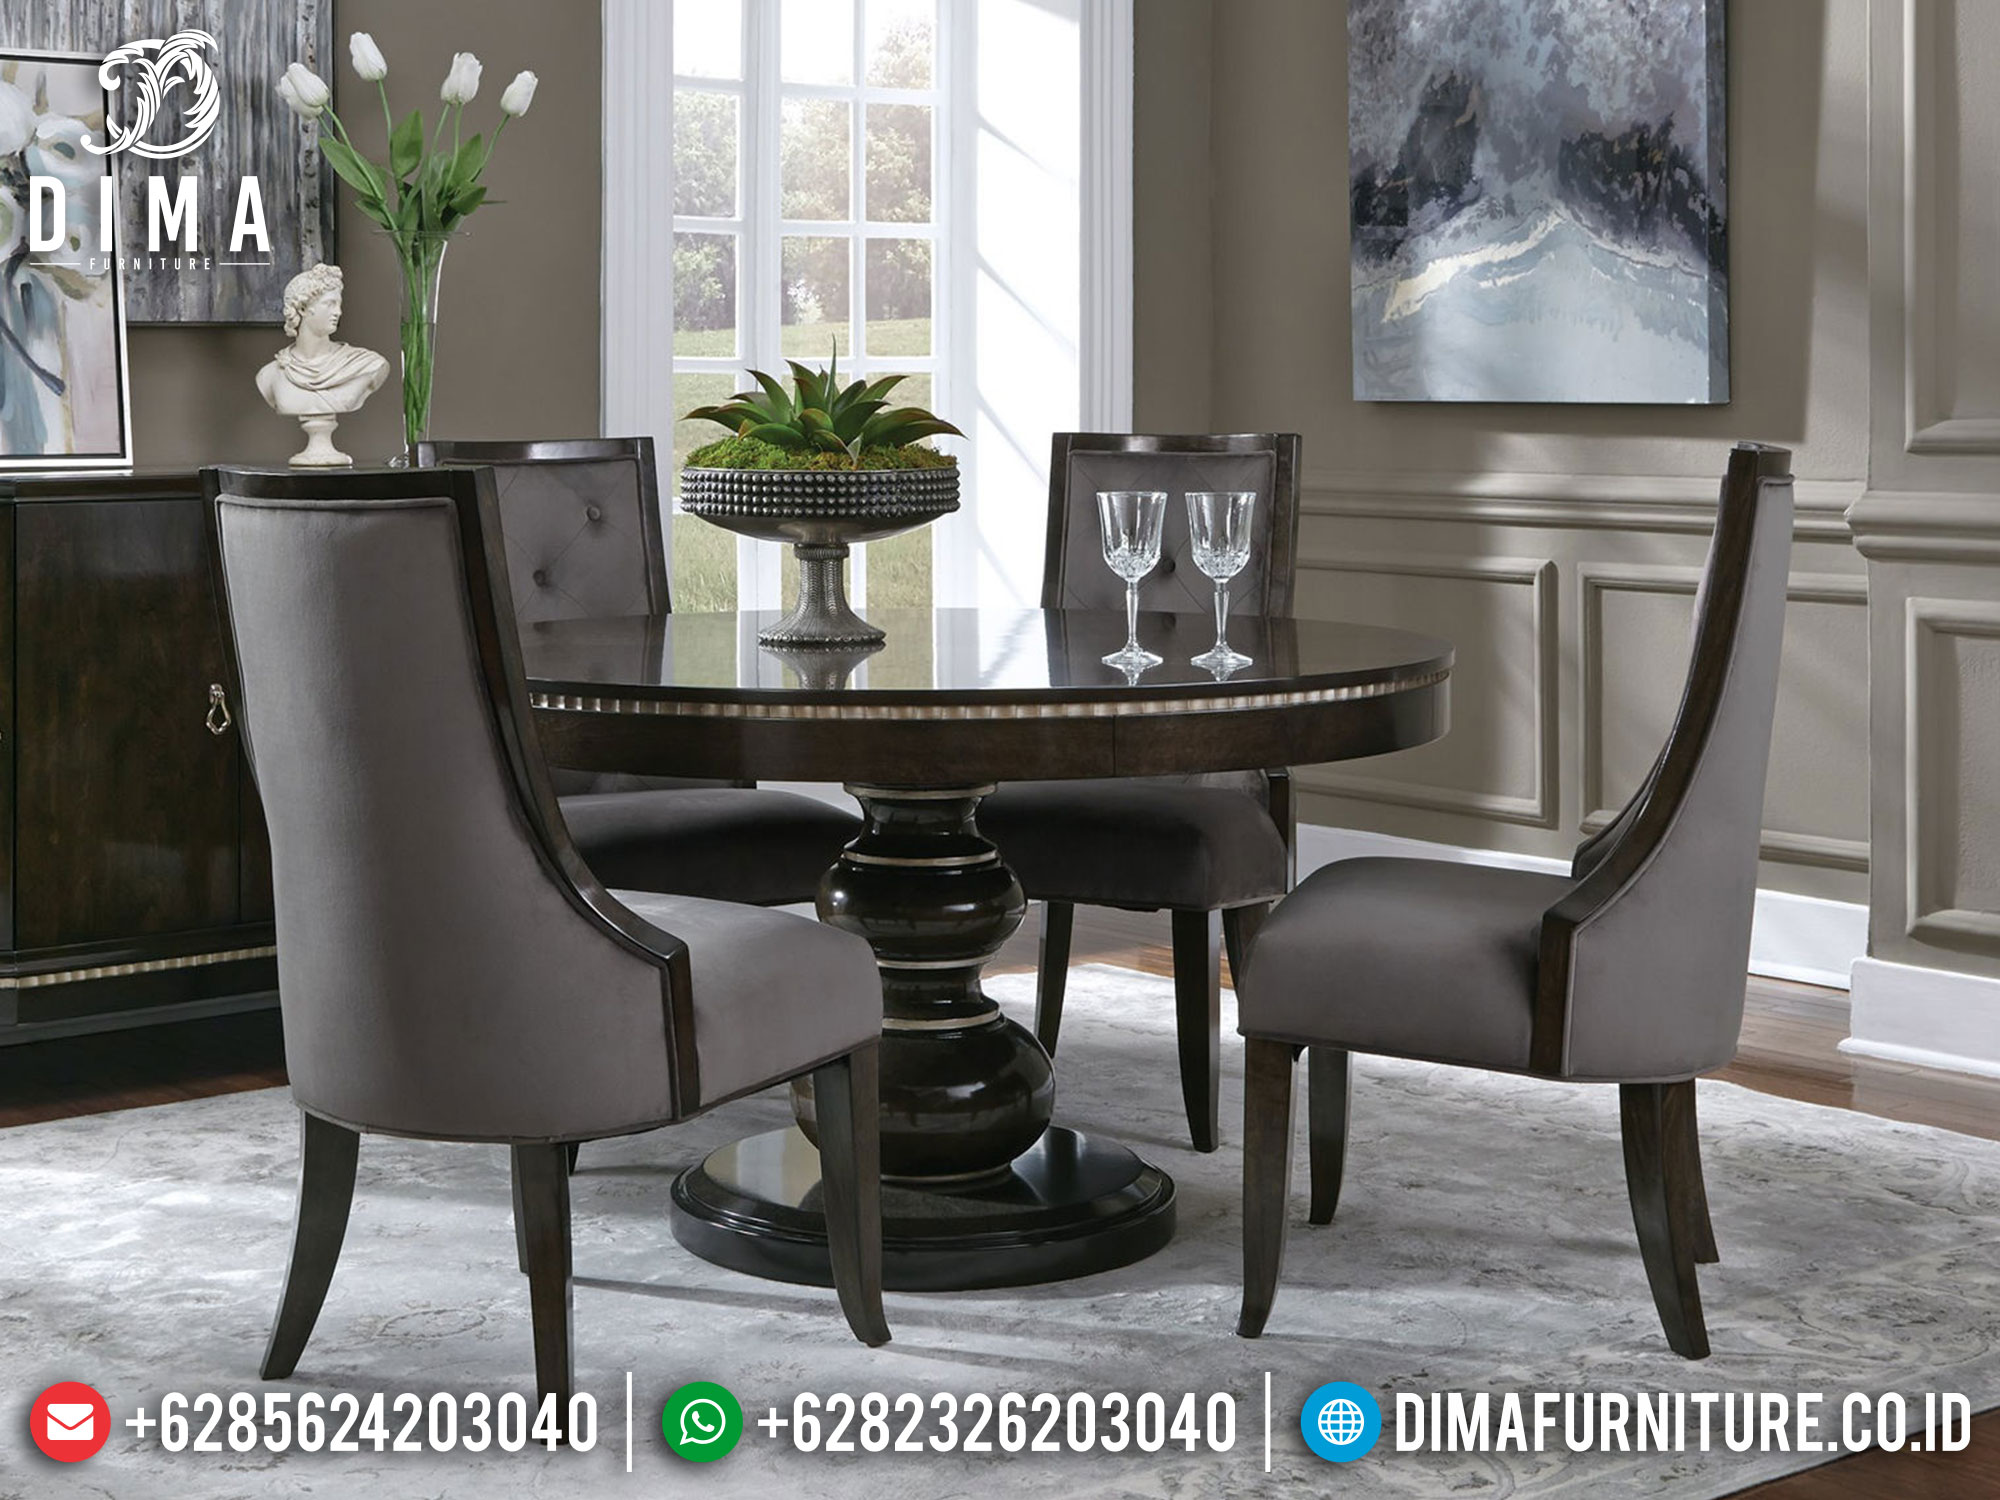 Harga Meja Makan Minimalis Bundar Jepara Luxury Furniture Classic Mm-1042